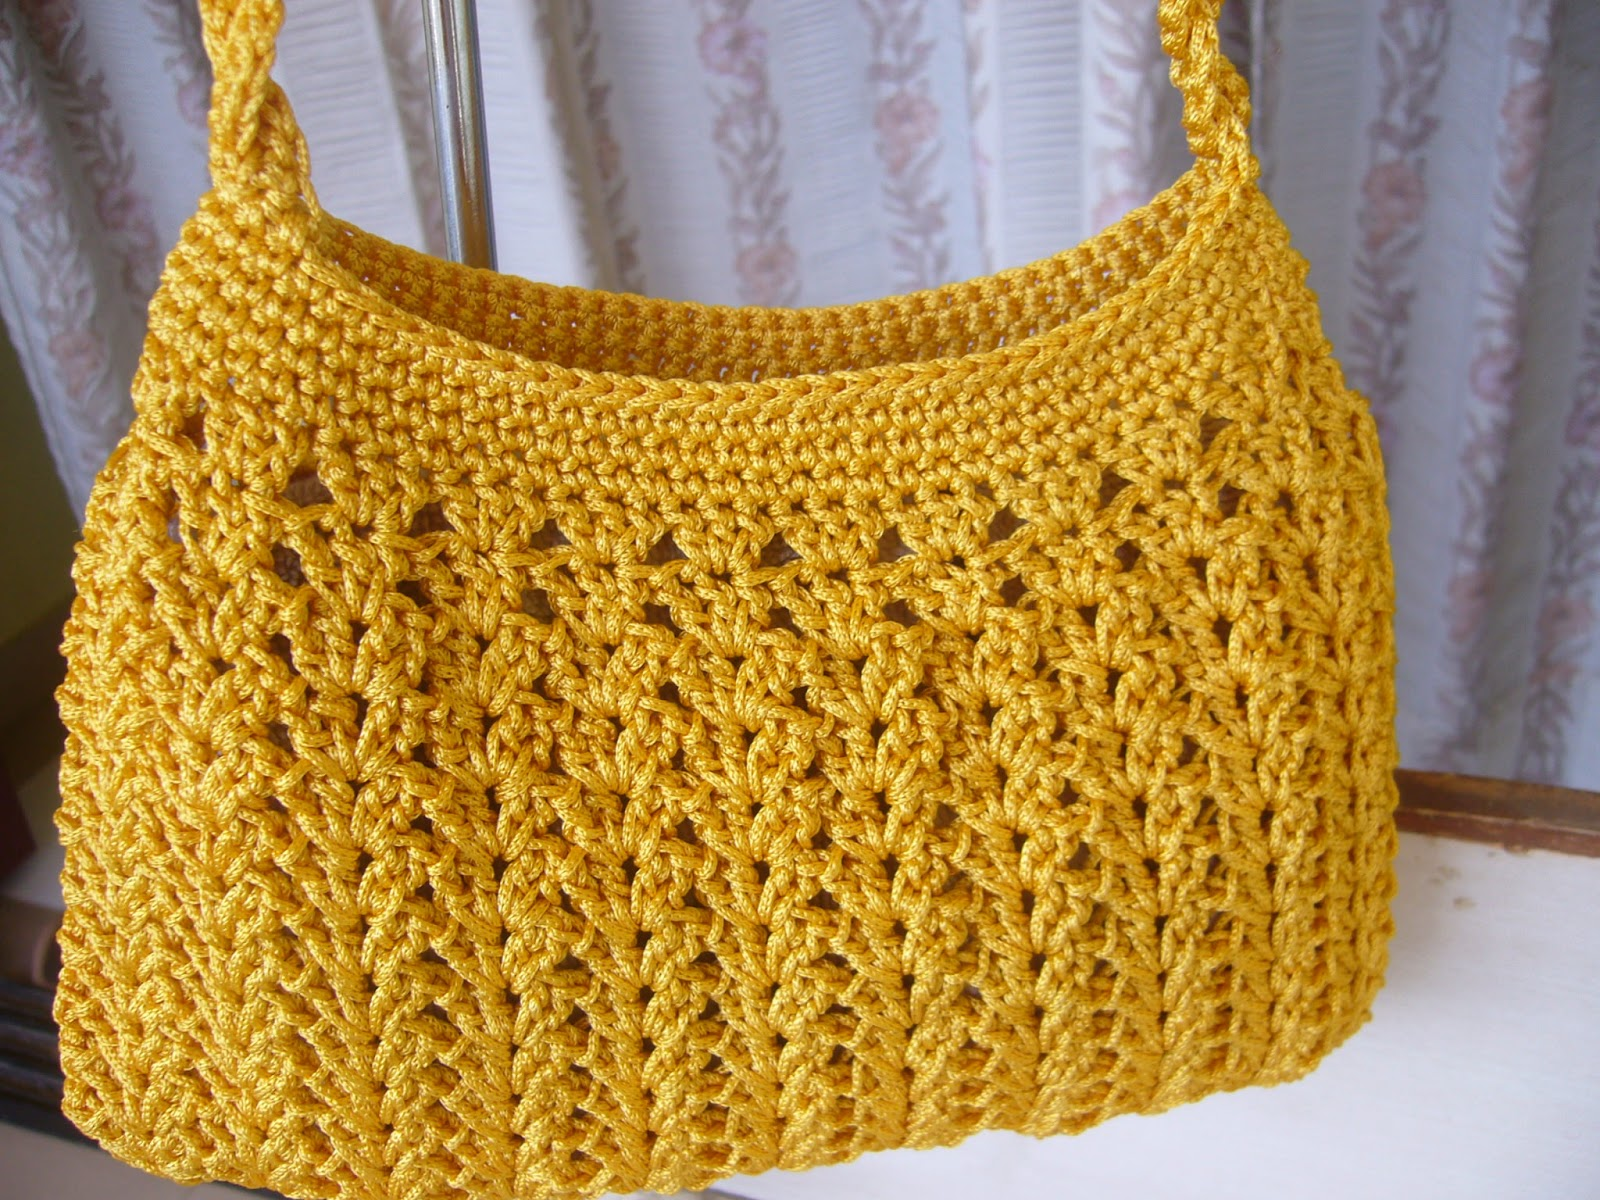 Pinterest Crochet Bags : Crochetkari: Golden yellow crochet purse